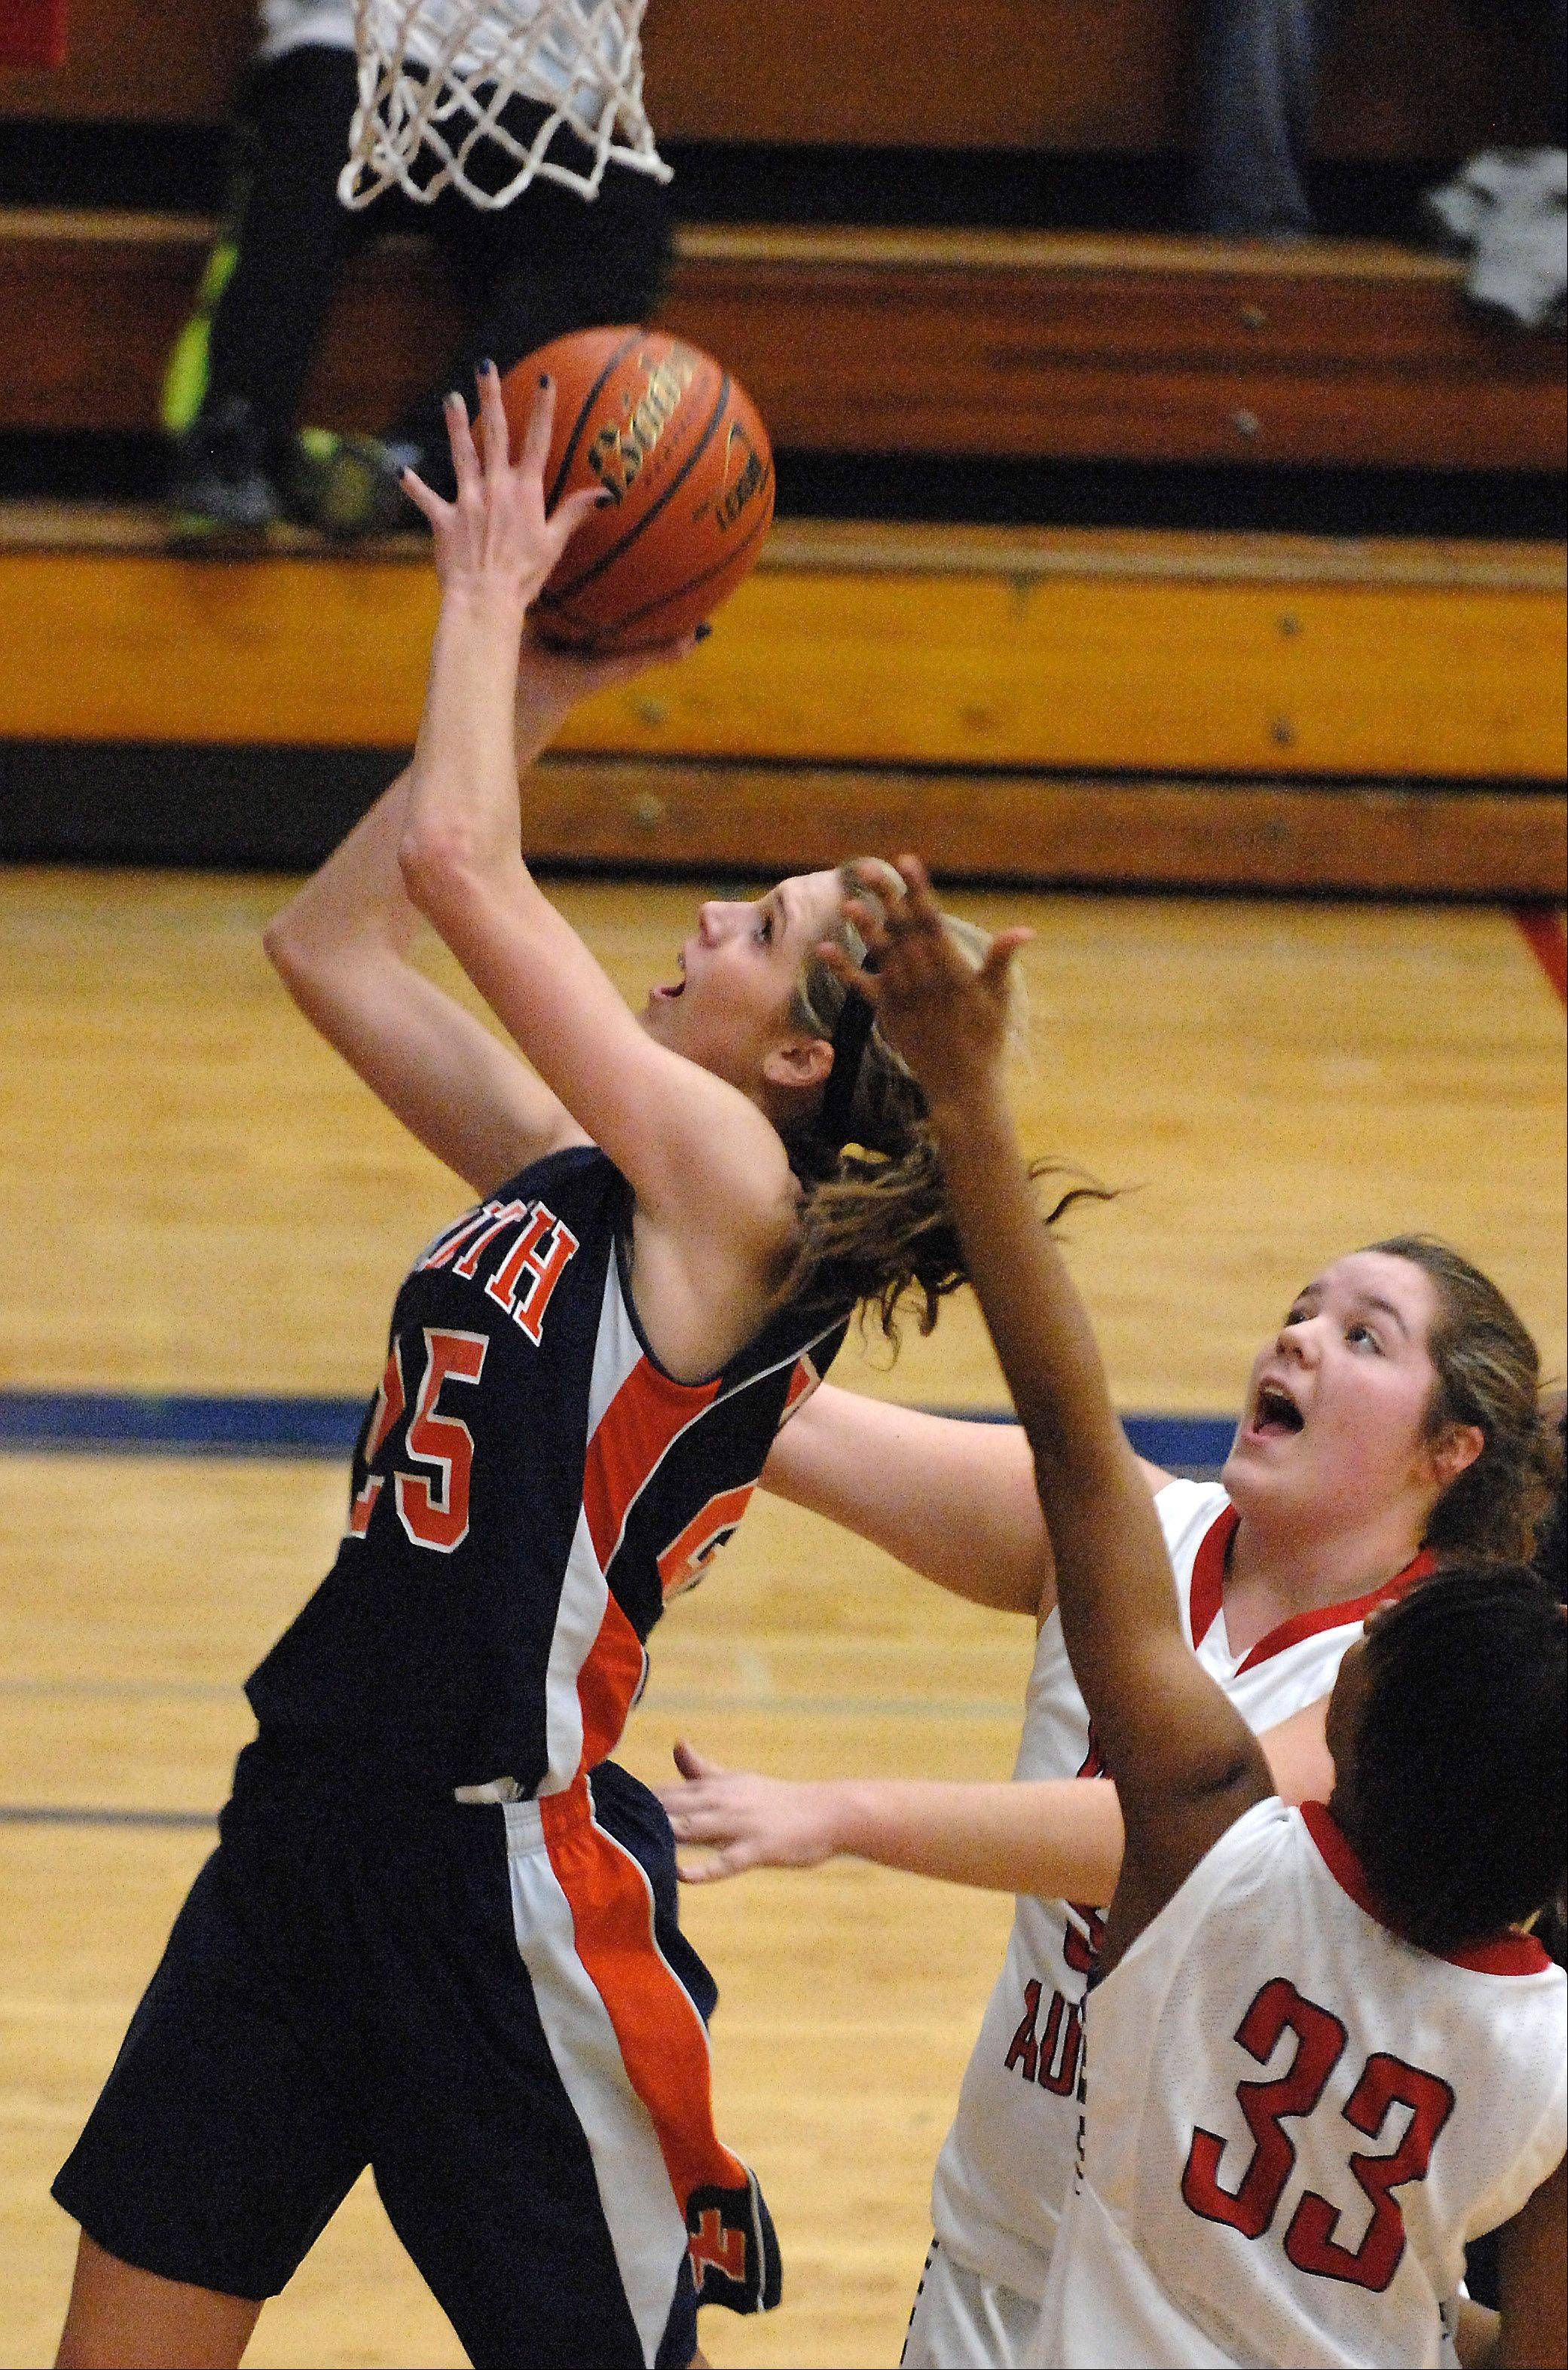 Naperville North's Kayla Sharples drives past two West Aurora defenders and scores during Thursday's game in Aurora.